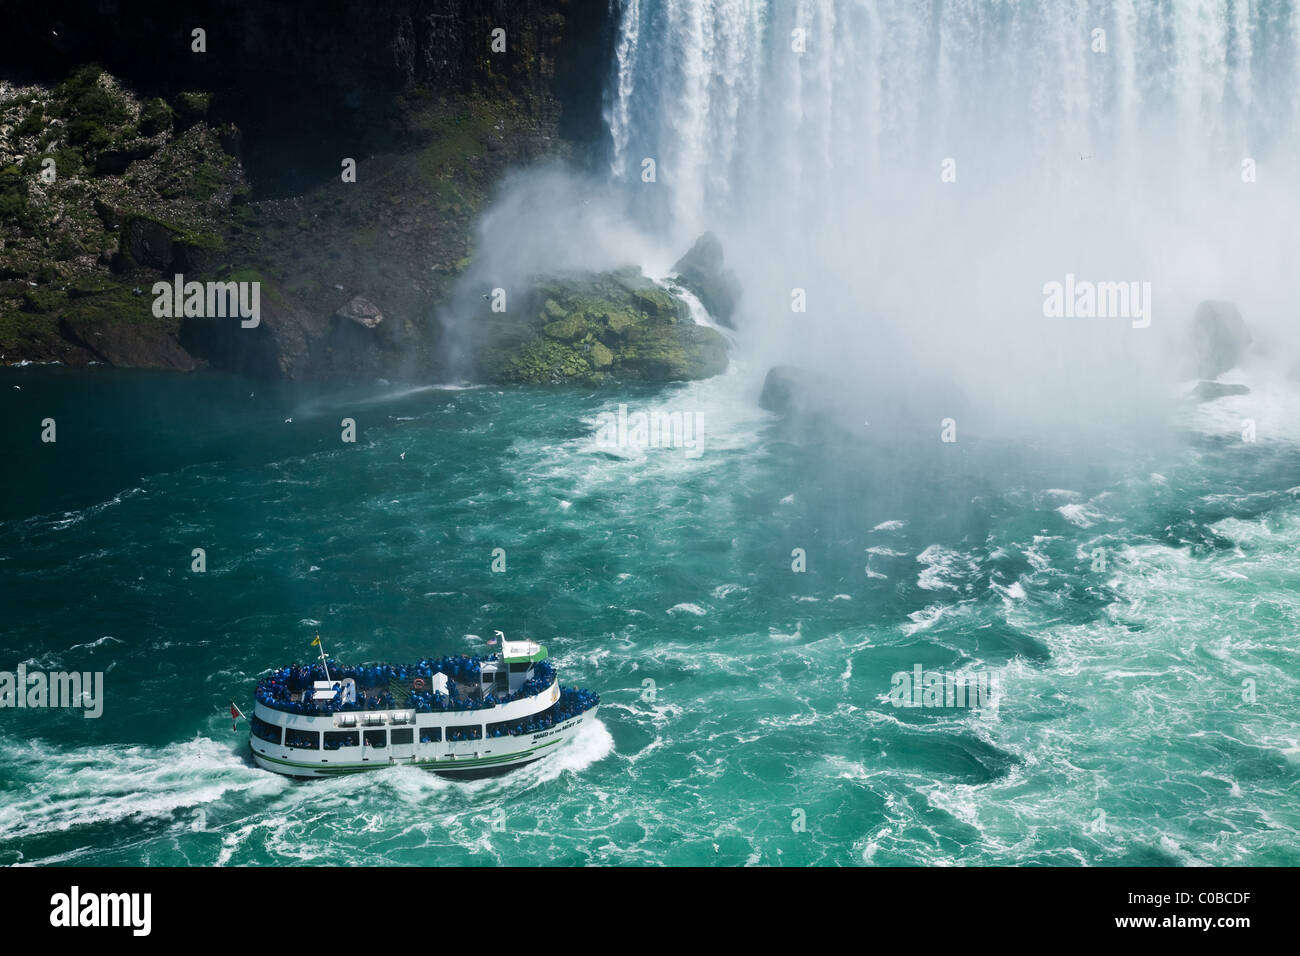 Tour boat with visitors at the base of Niagara falls - Stock Image